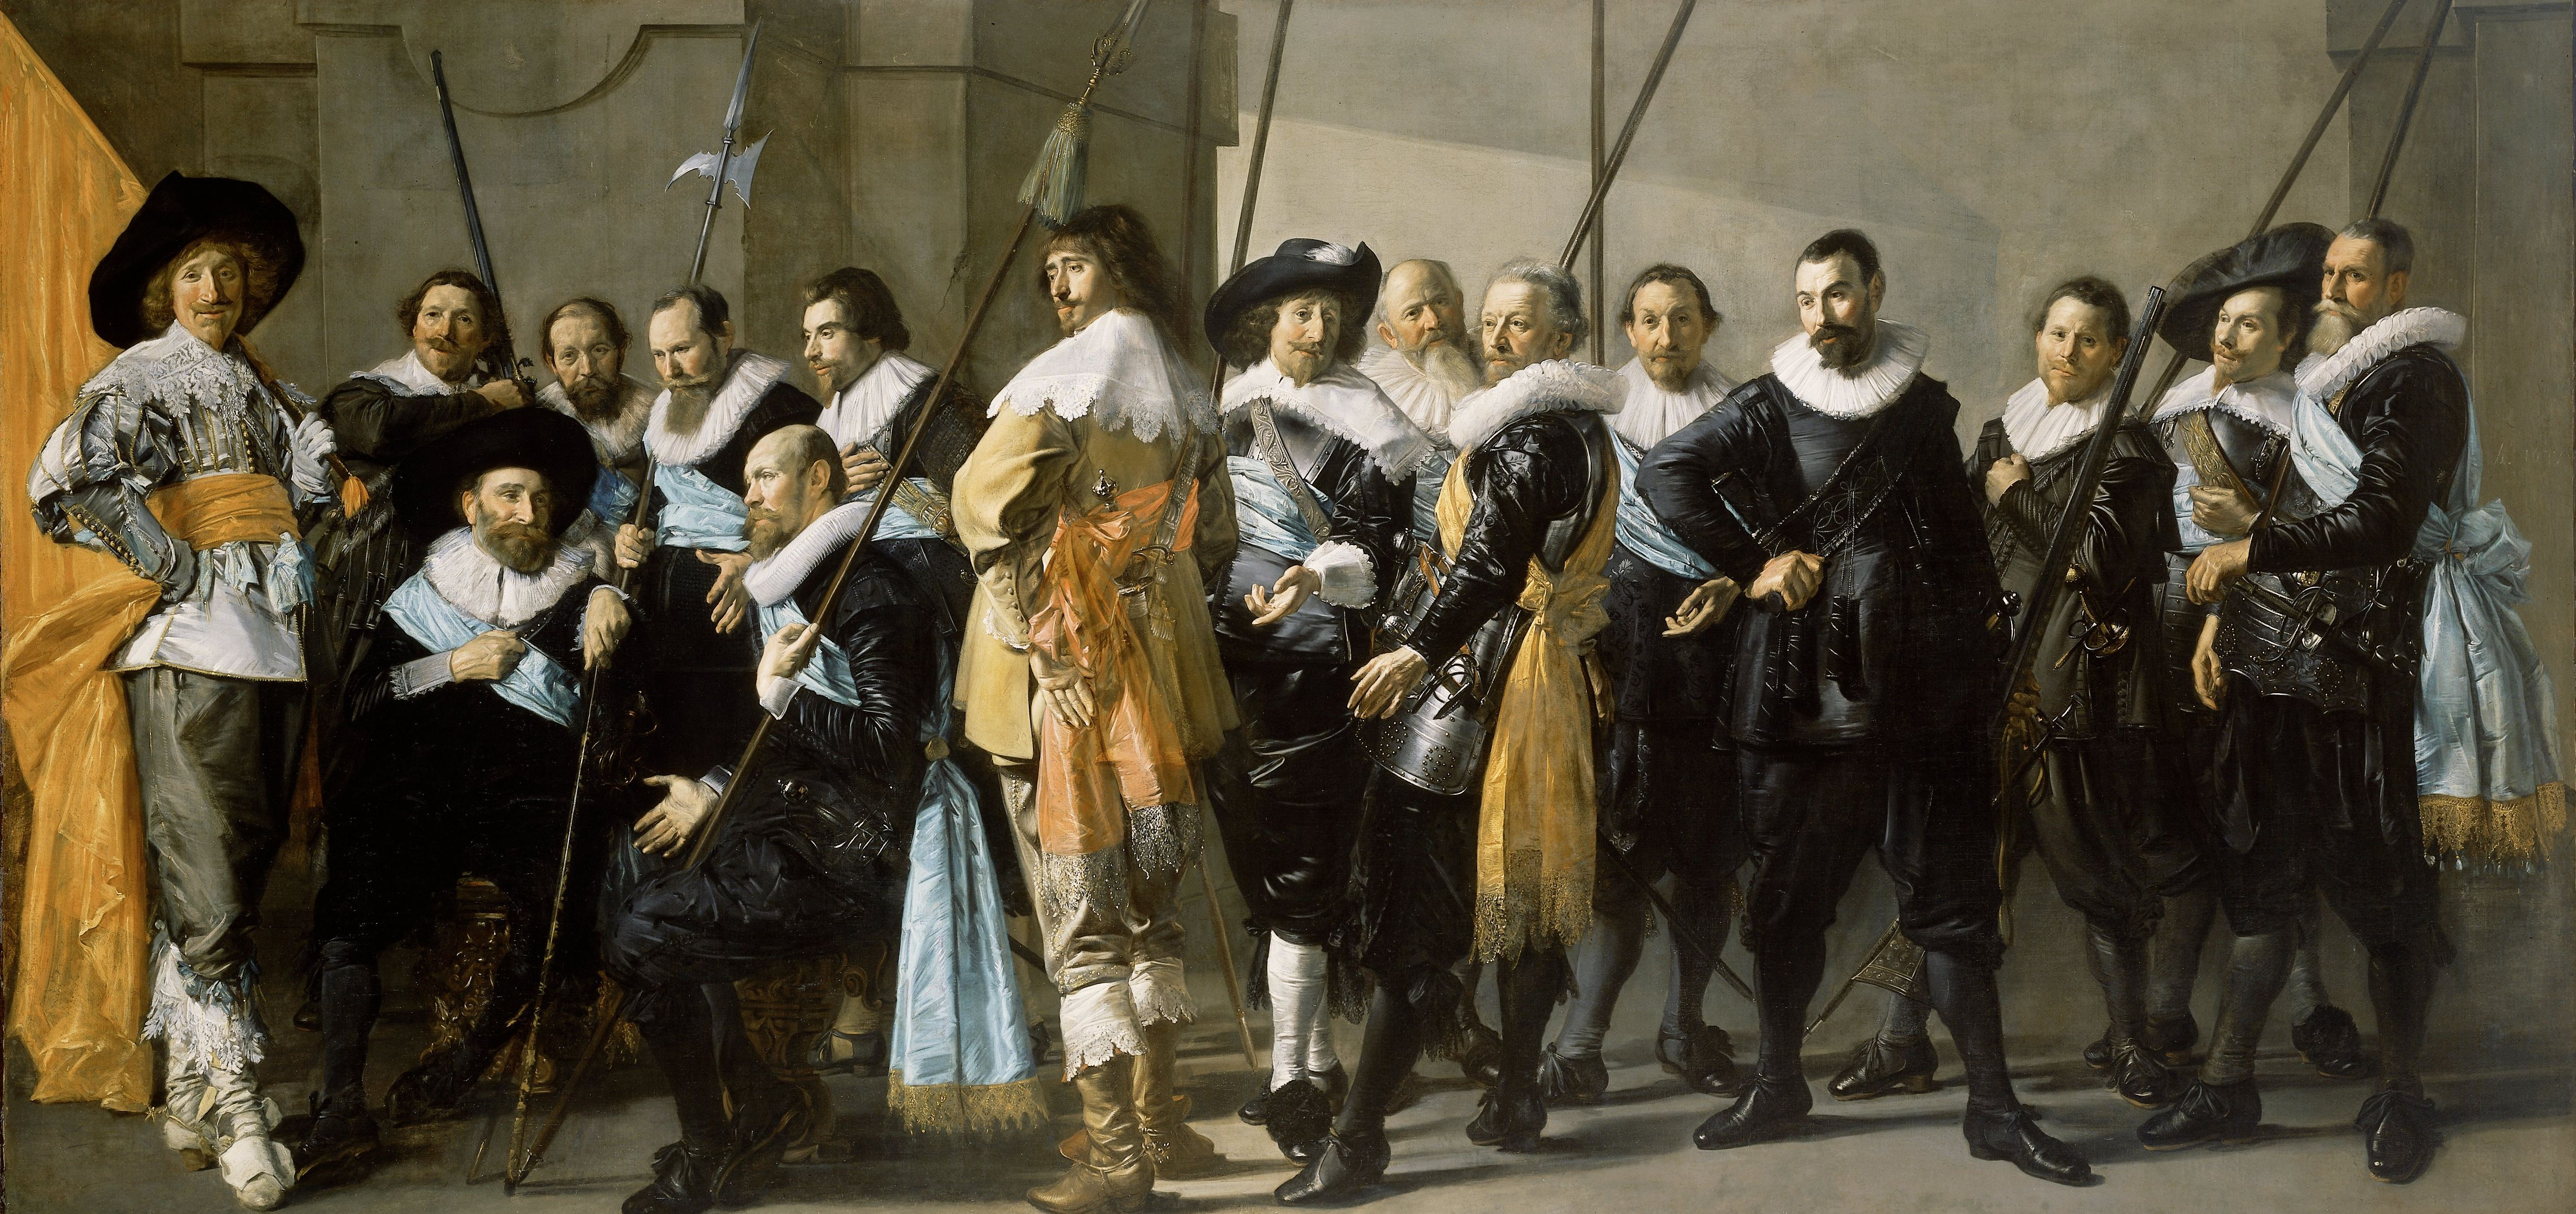 https://upload.wikimedia.org/wikipedia/commons/8/87/Frans_Hals,_De_magere_compagnie.jpg